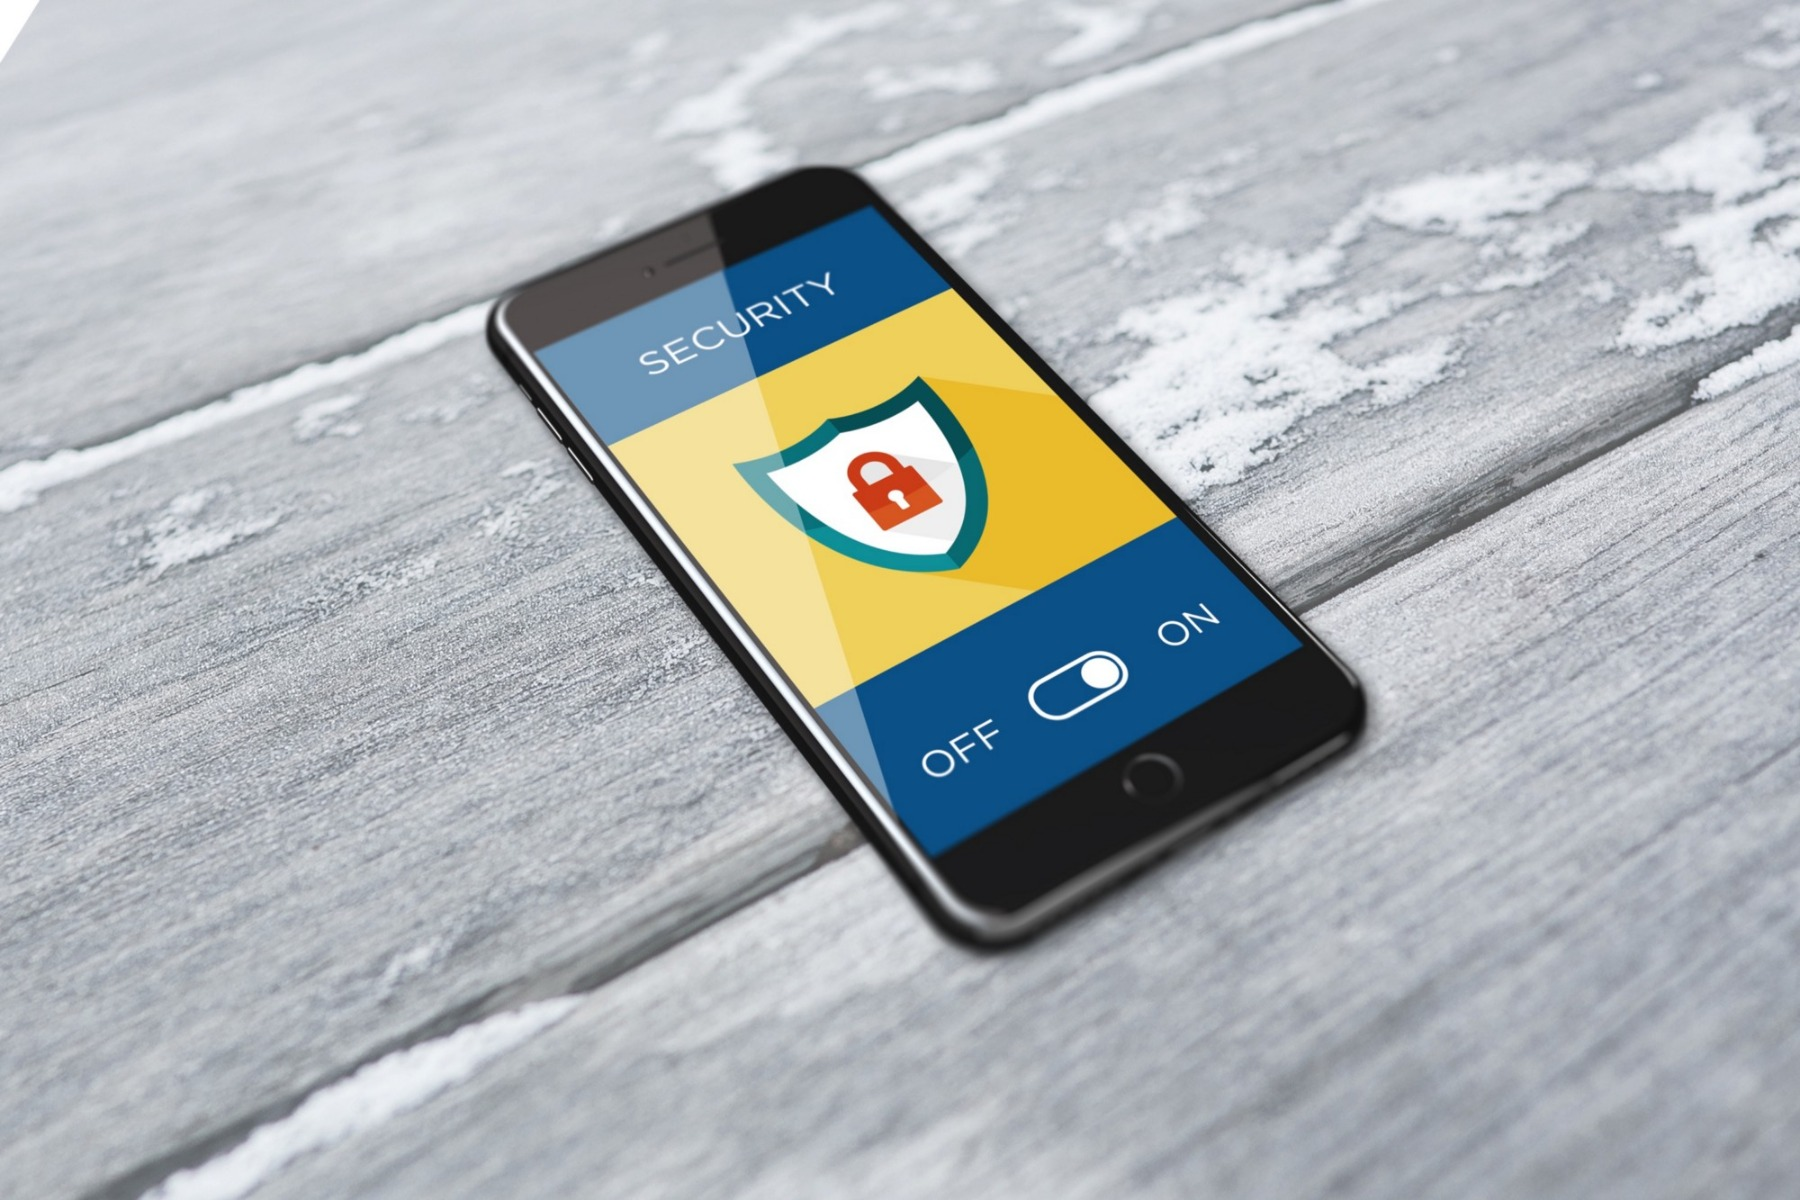 A phone with a security graphic on the screen